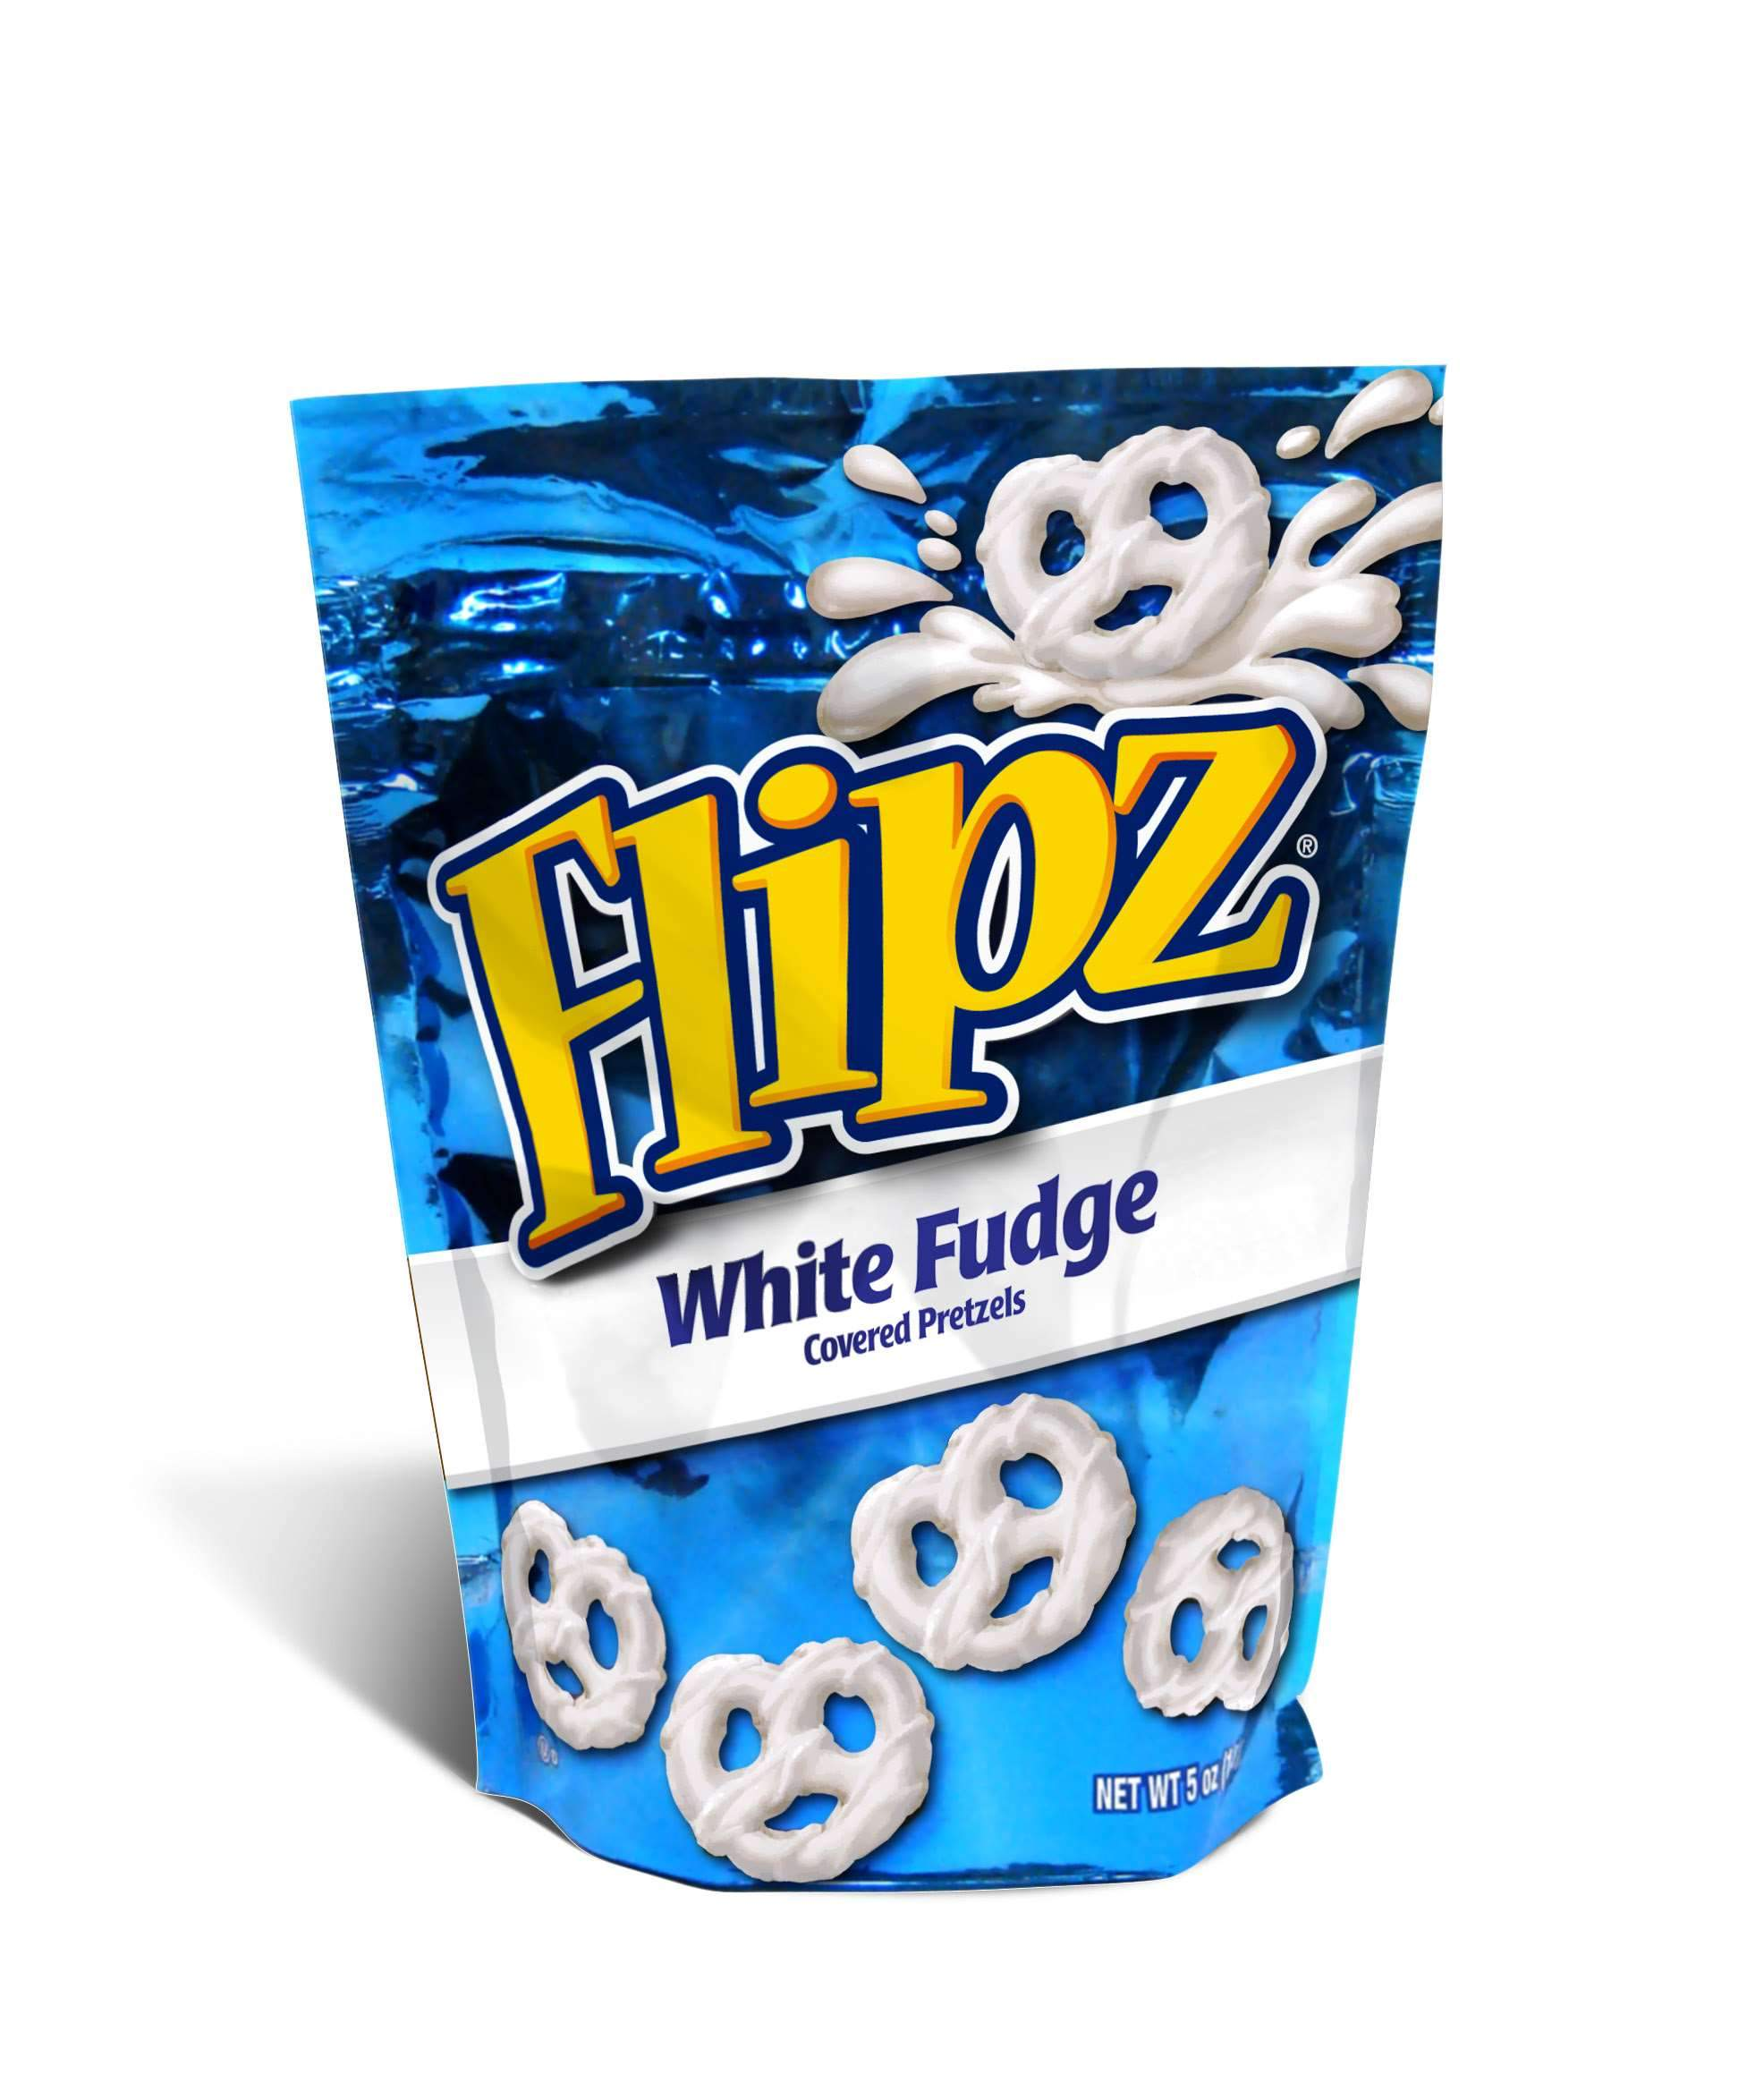 Flipz Chocolate Covered Pretzels Flipz White Fudge 5 Ounce